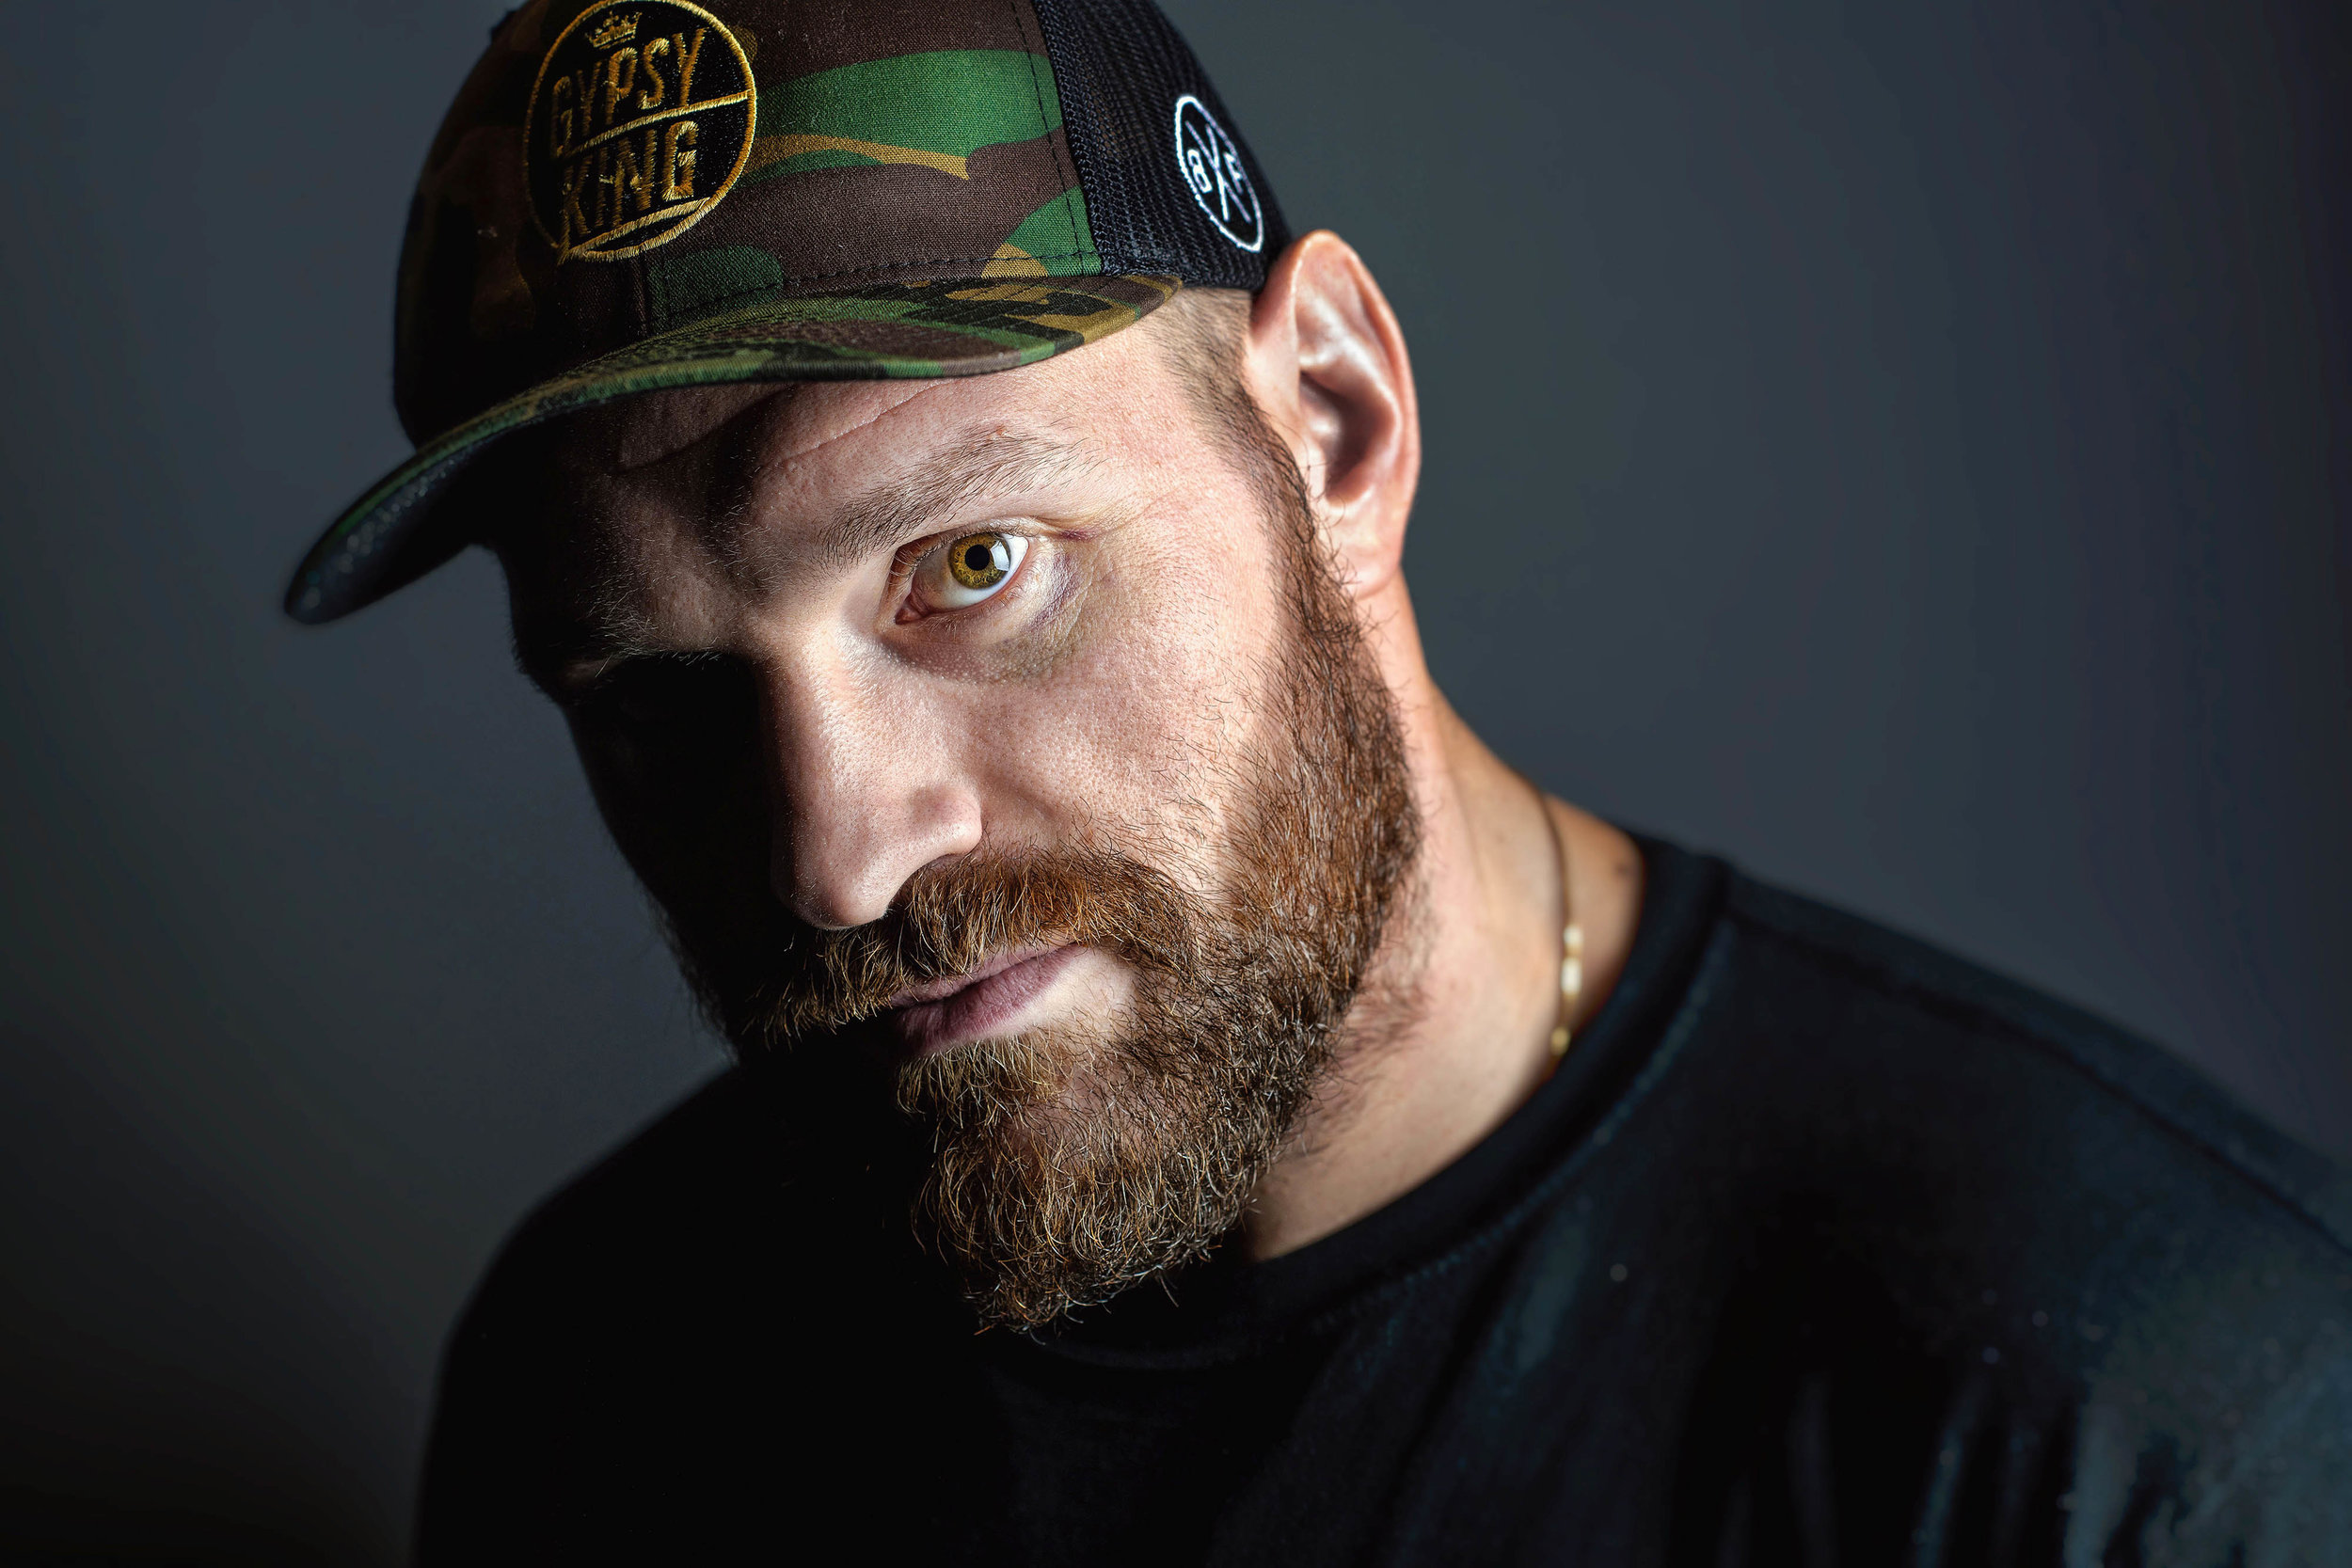 TYSON FURY PORTRAIT PHOTO CREDIT PAUL COOPER